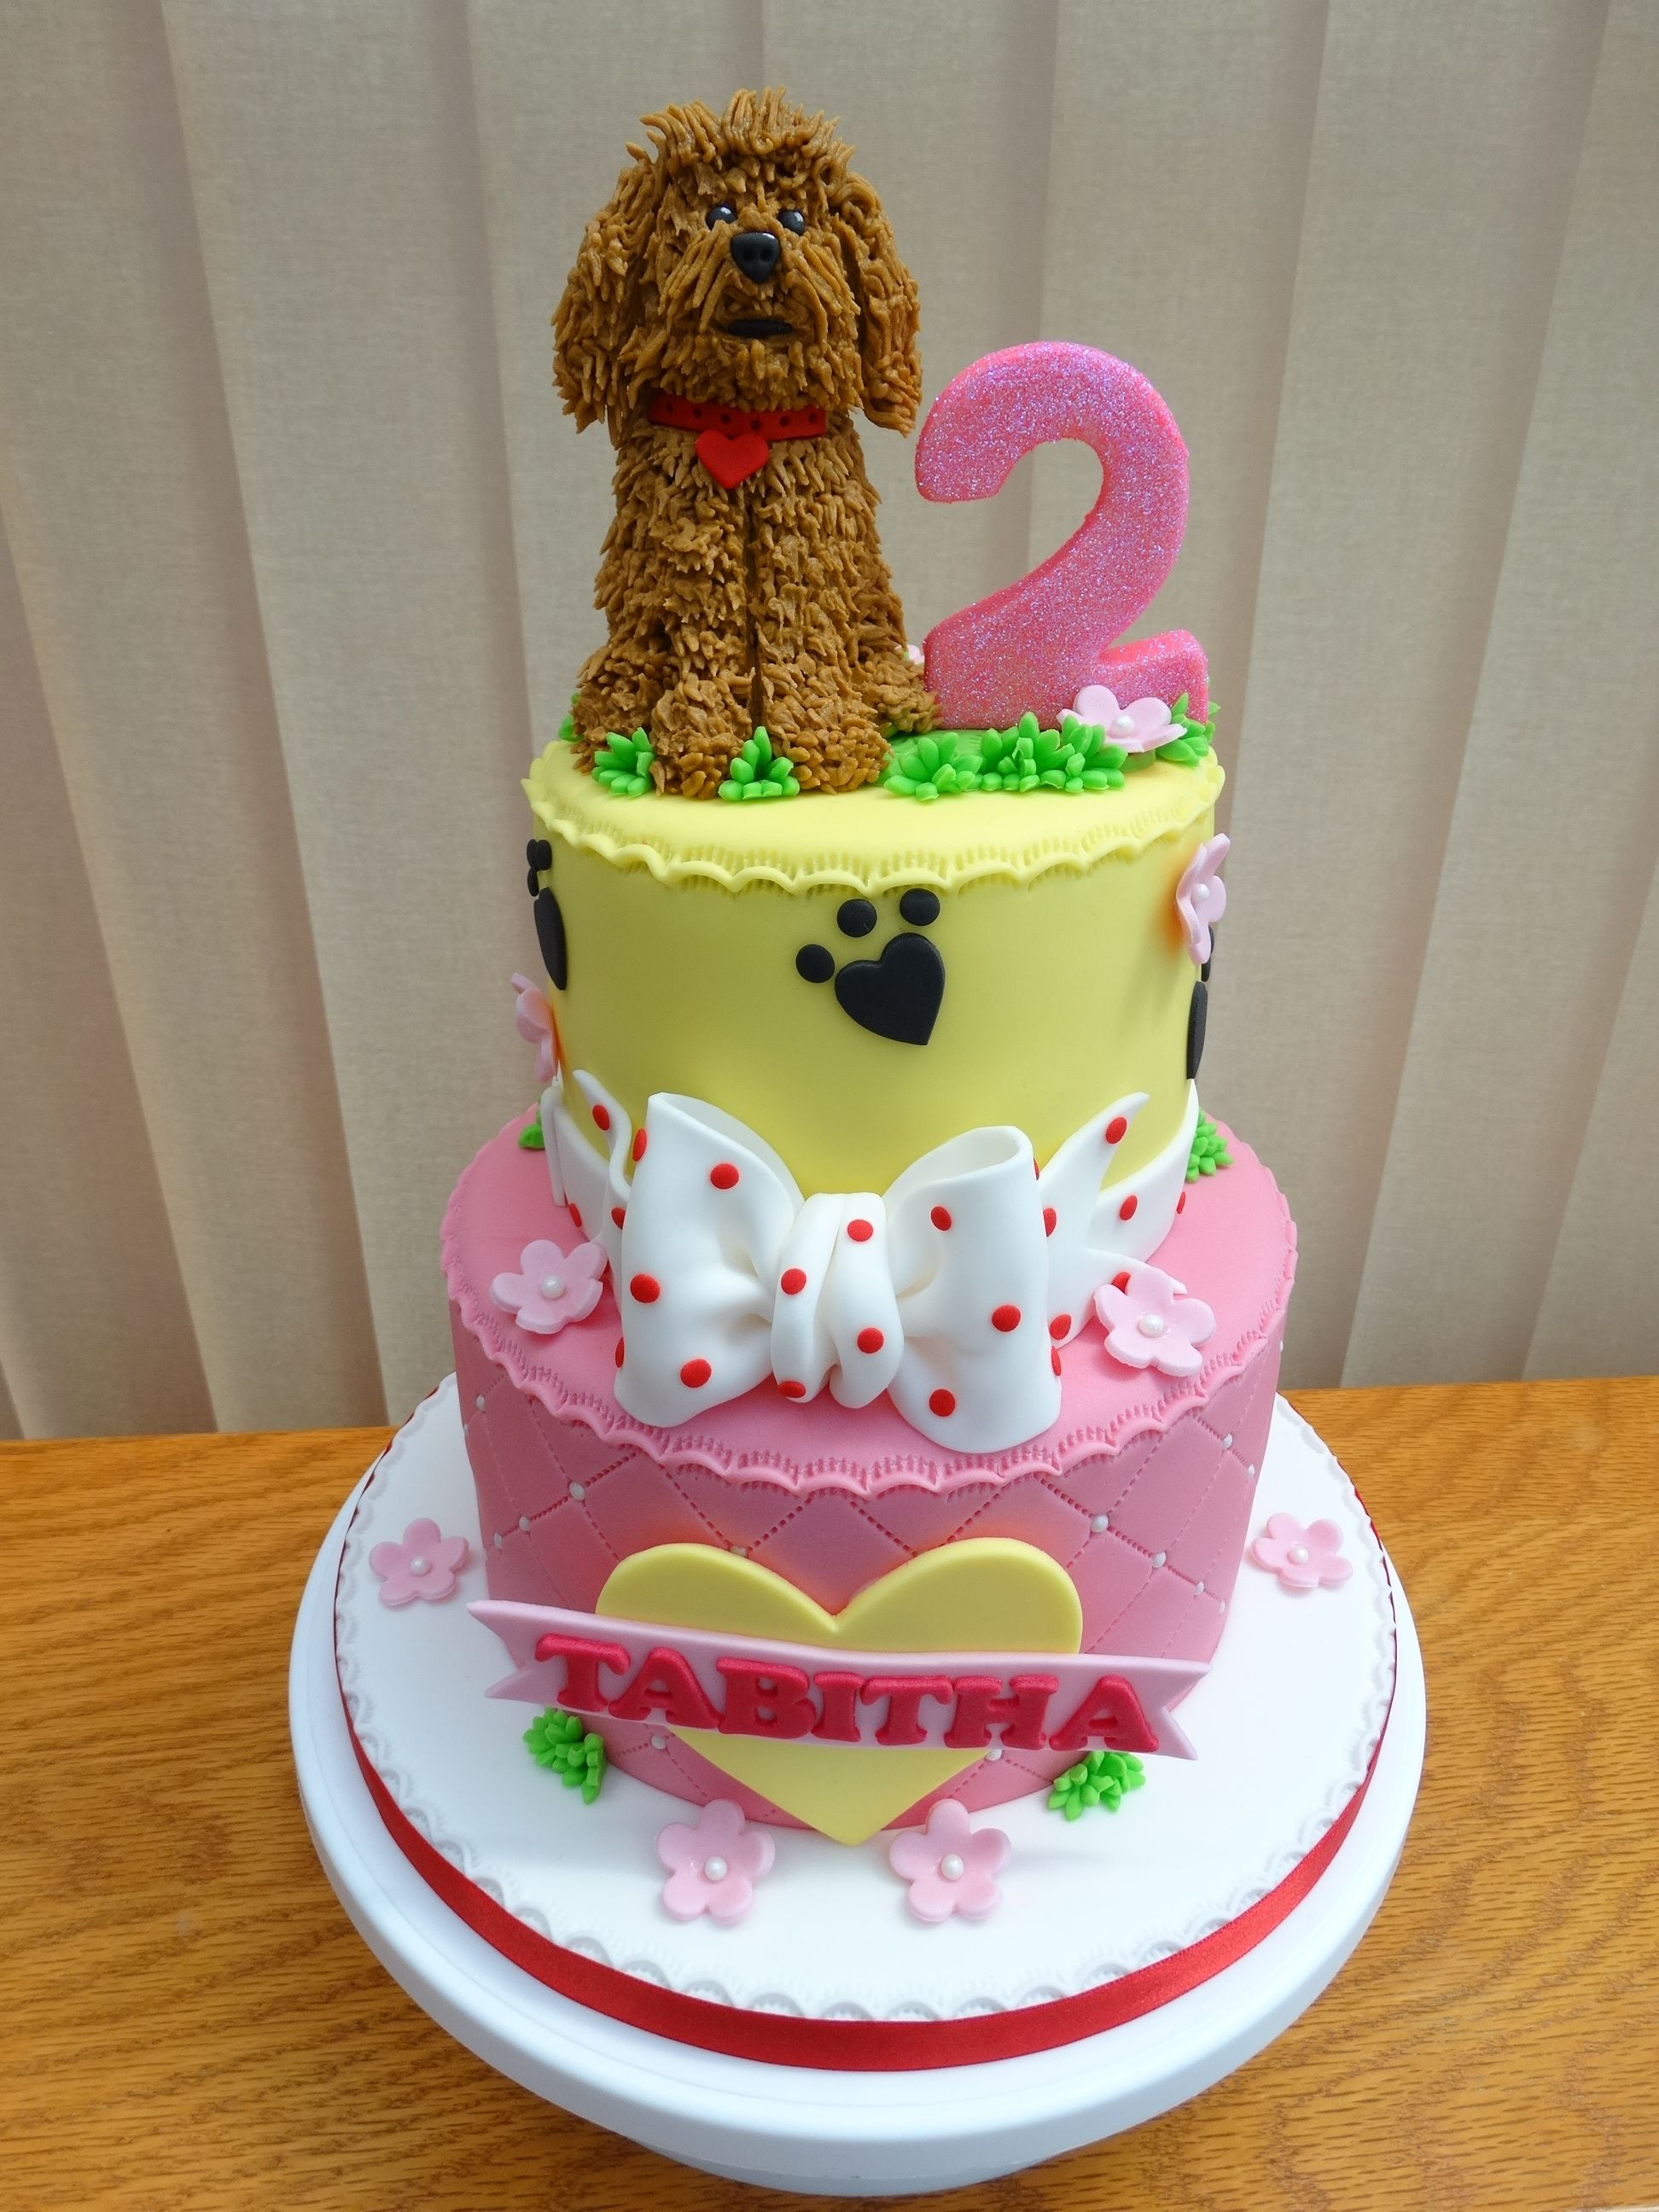 Waffle The Wonder Dog Cake XMCx Baby Girl Birthday Ideas